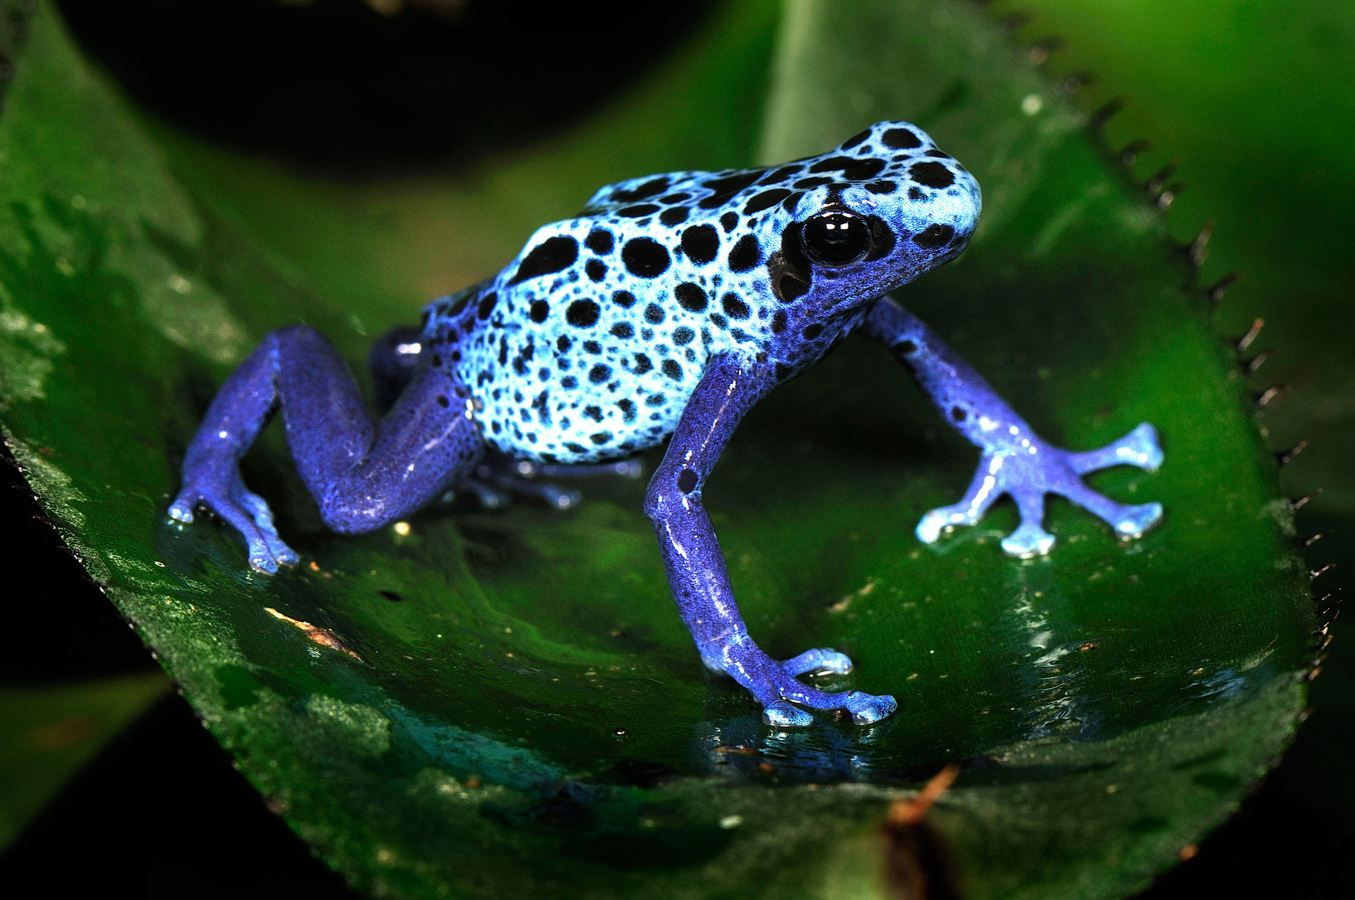 a blue poison dart frog from surinam the colourful amphibian is